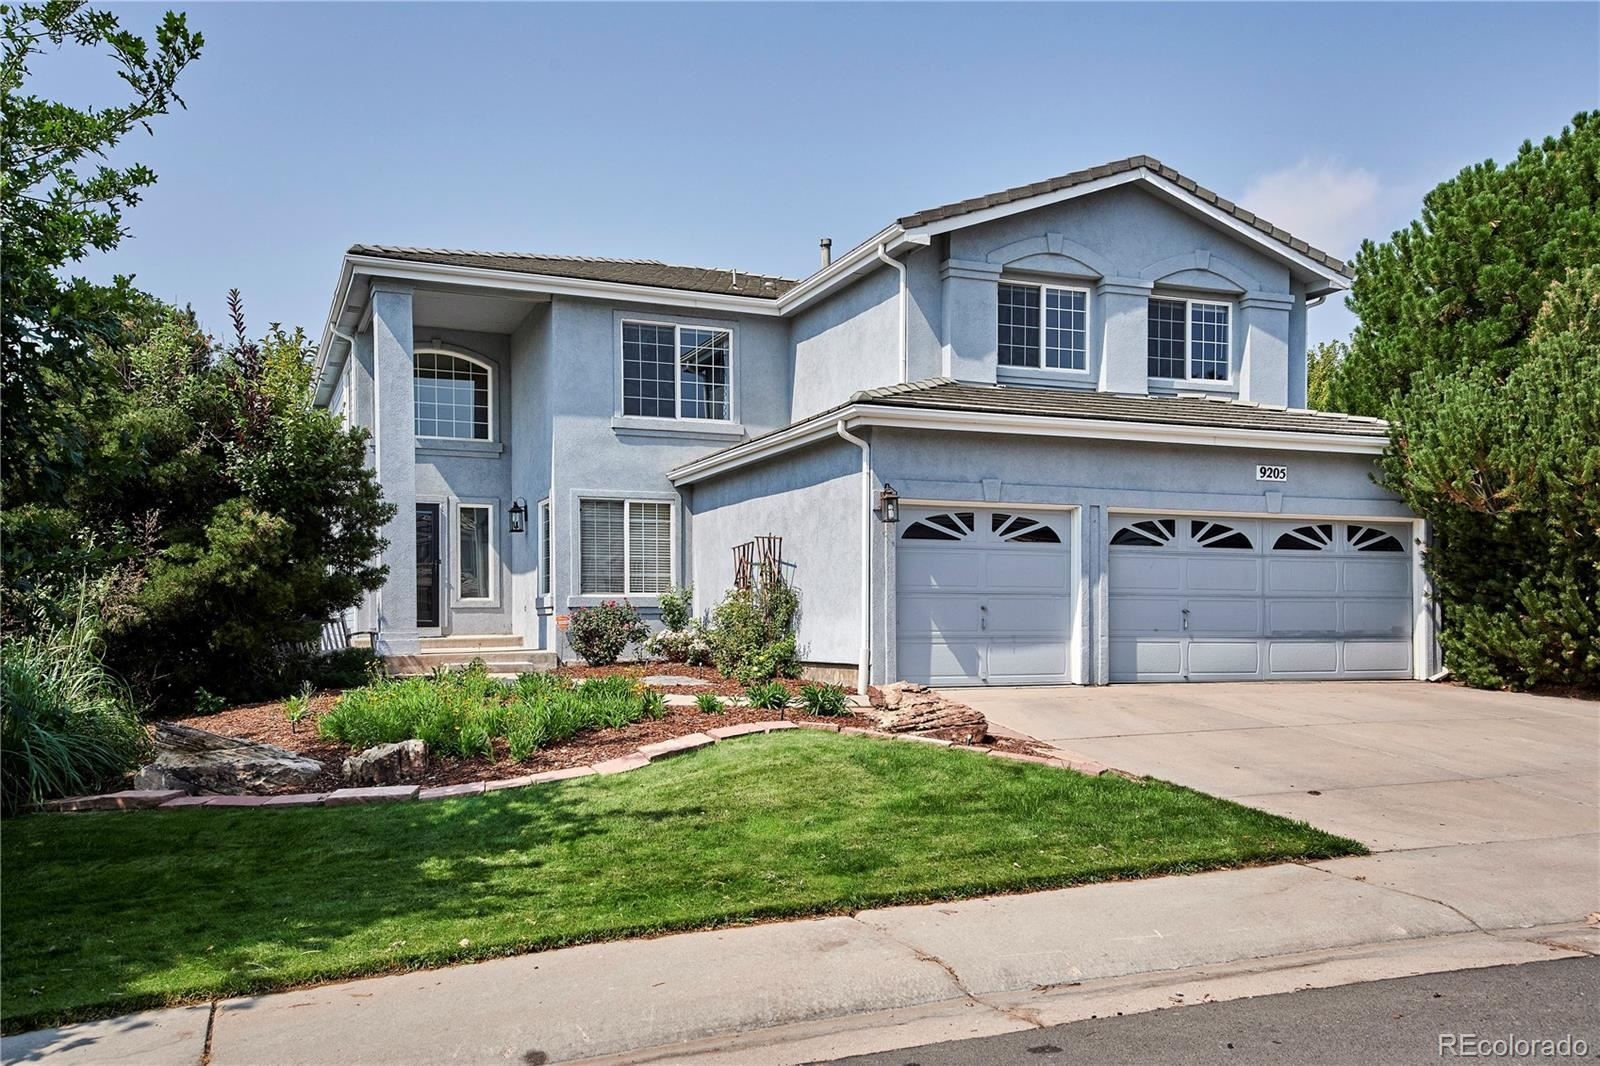 9205 Ironwood Way, Highlands Ranch, CO 80129 - #: 6295619